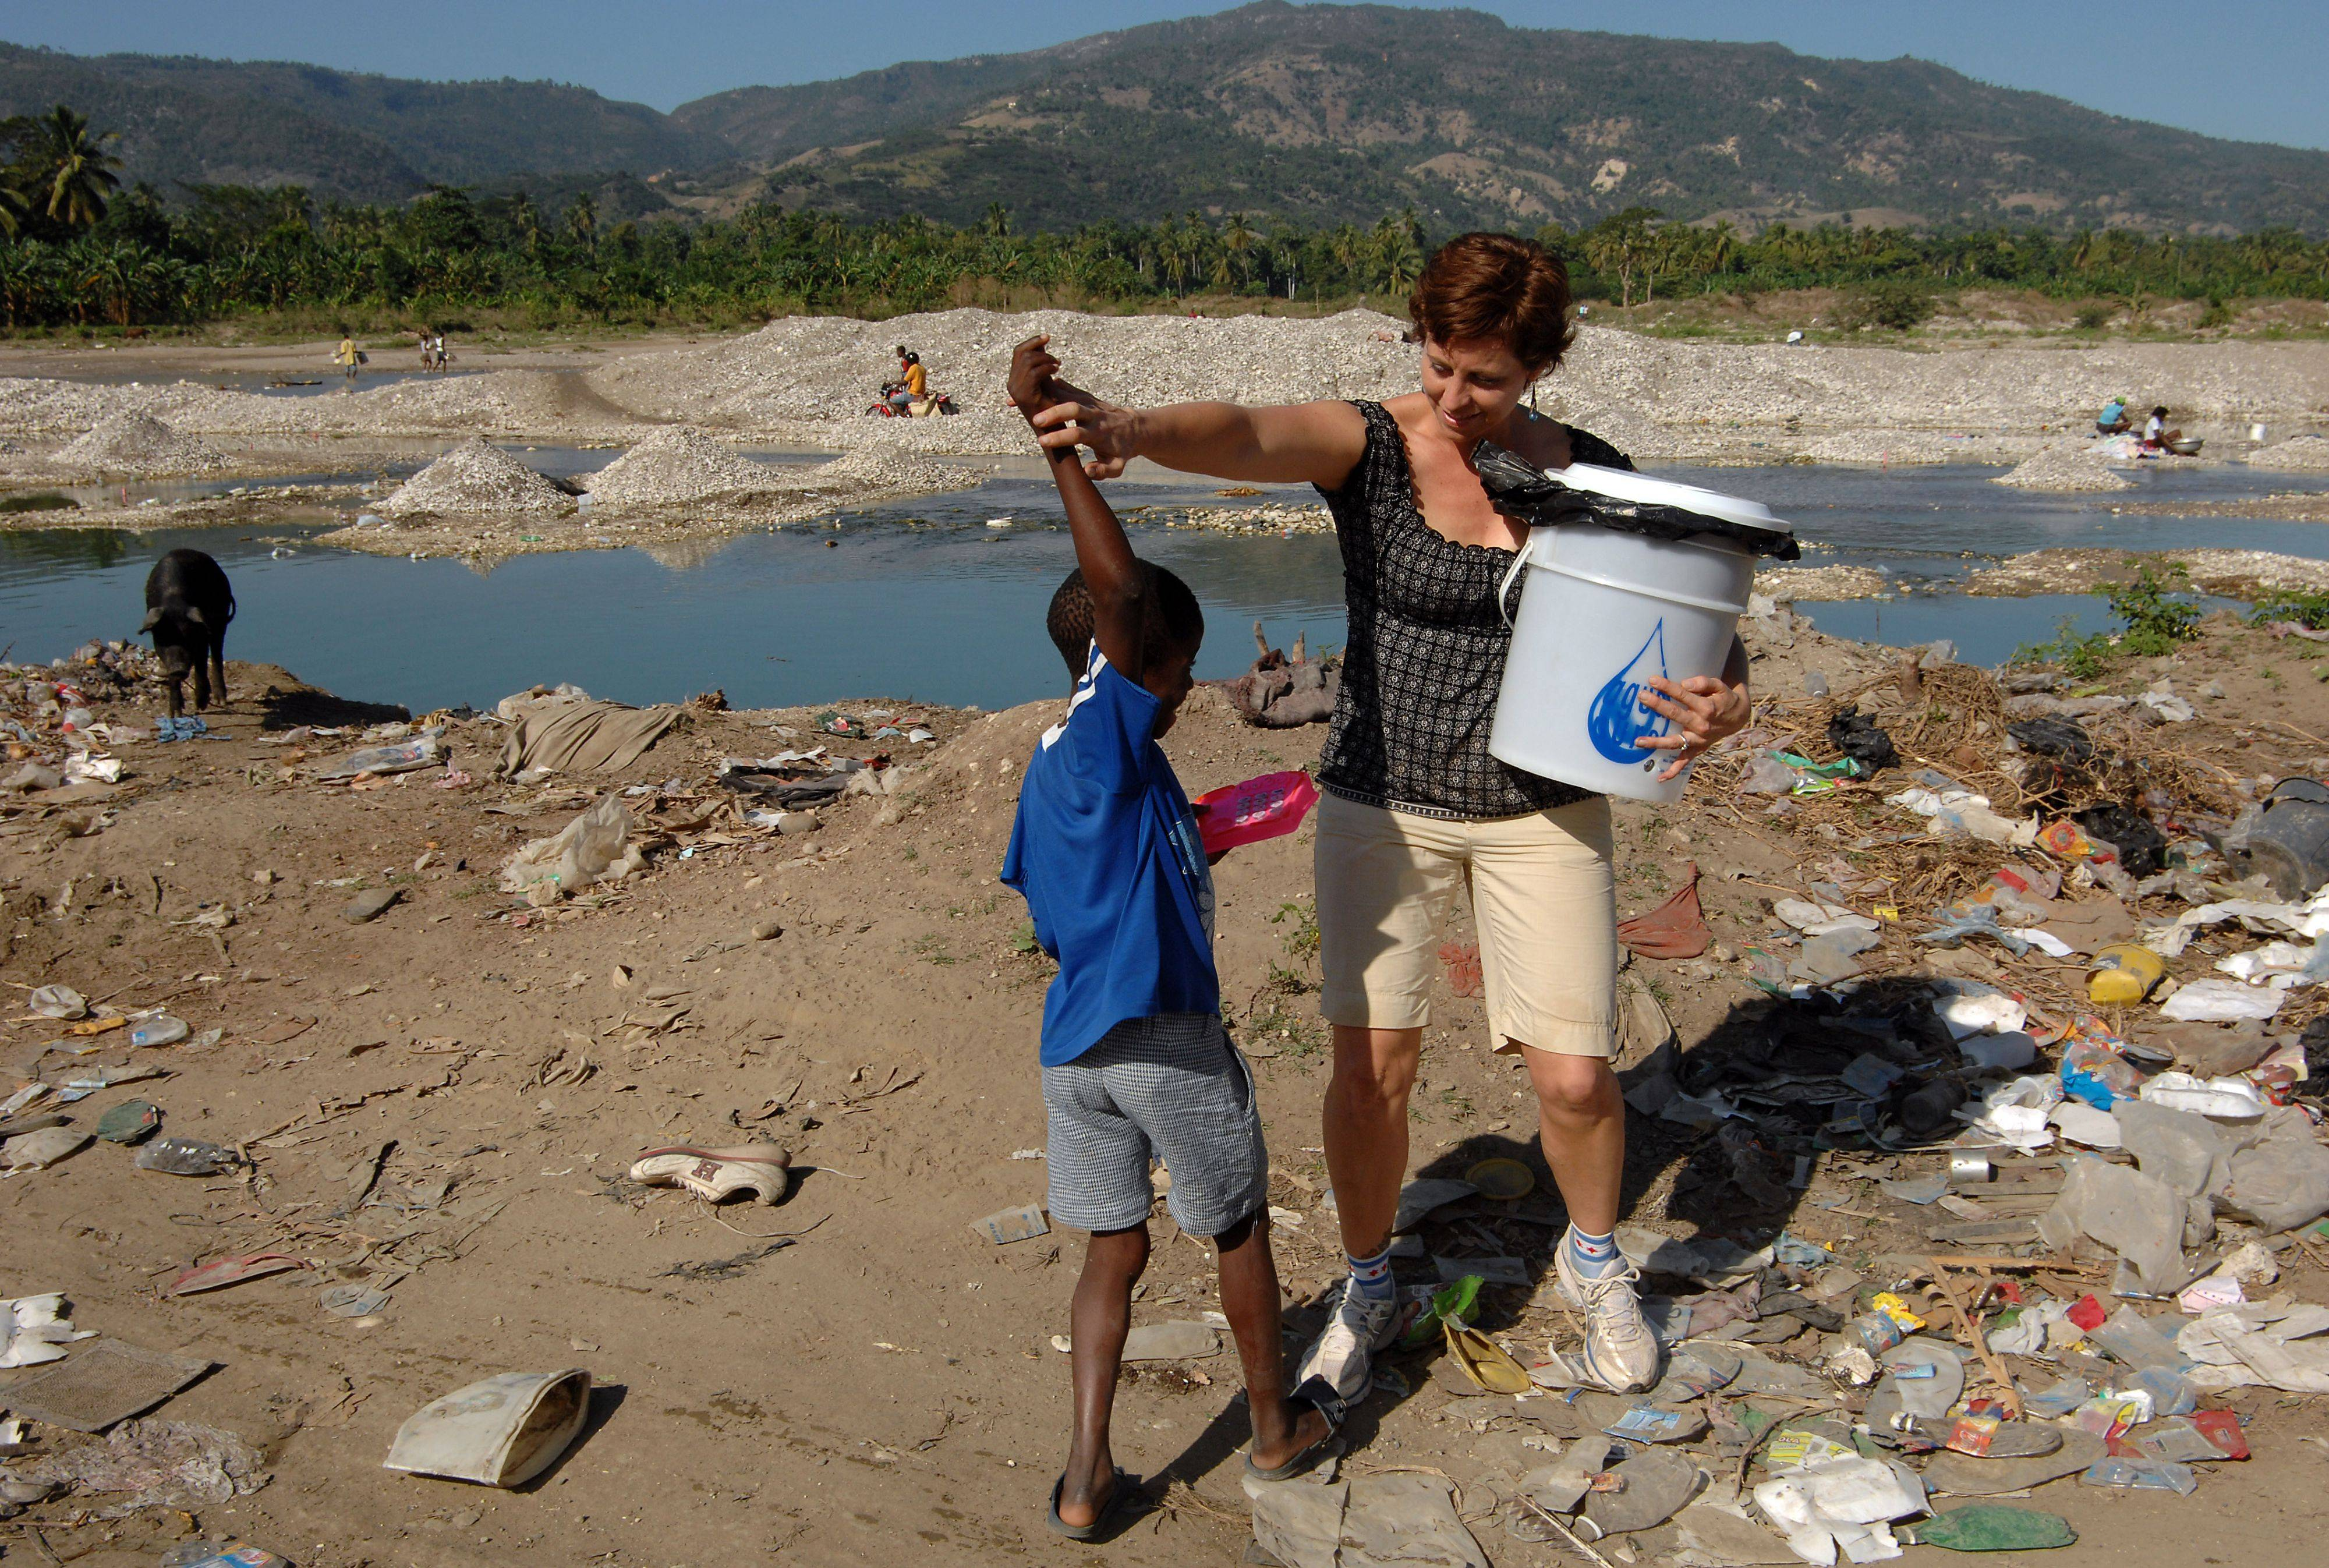 Mark Welsh/mwelsh@dailyherald.comLisa Ballantine, director of FilterPure Filters, dances with a little boy in the dump area near the beach at Jacmel, Haiti.